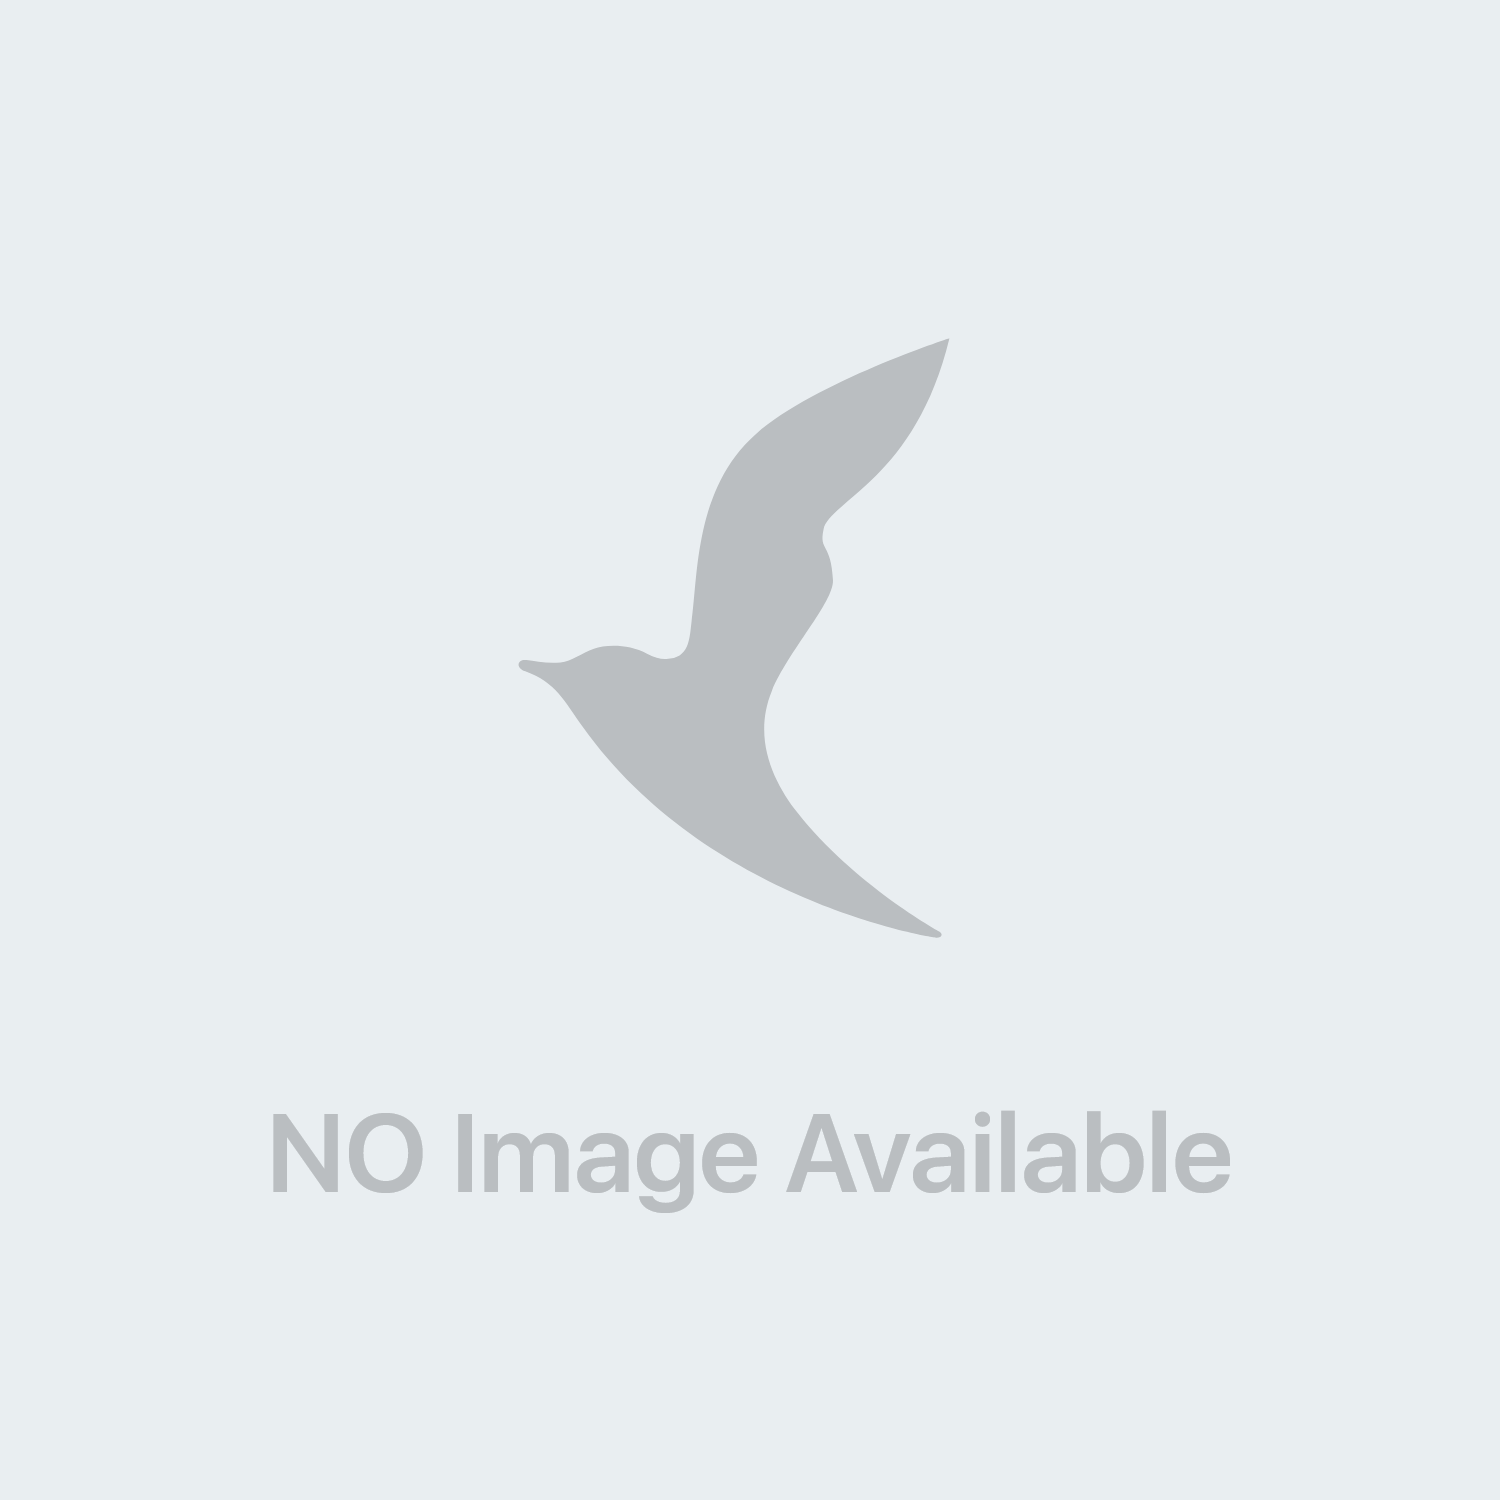 Valeriana Alfa 30 Compresse Rivestite 100 mg